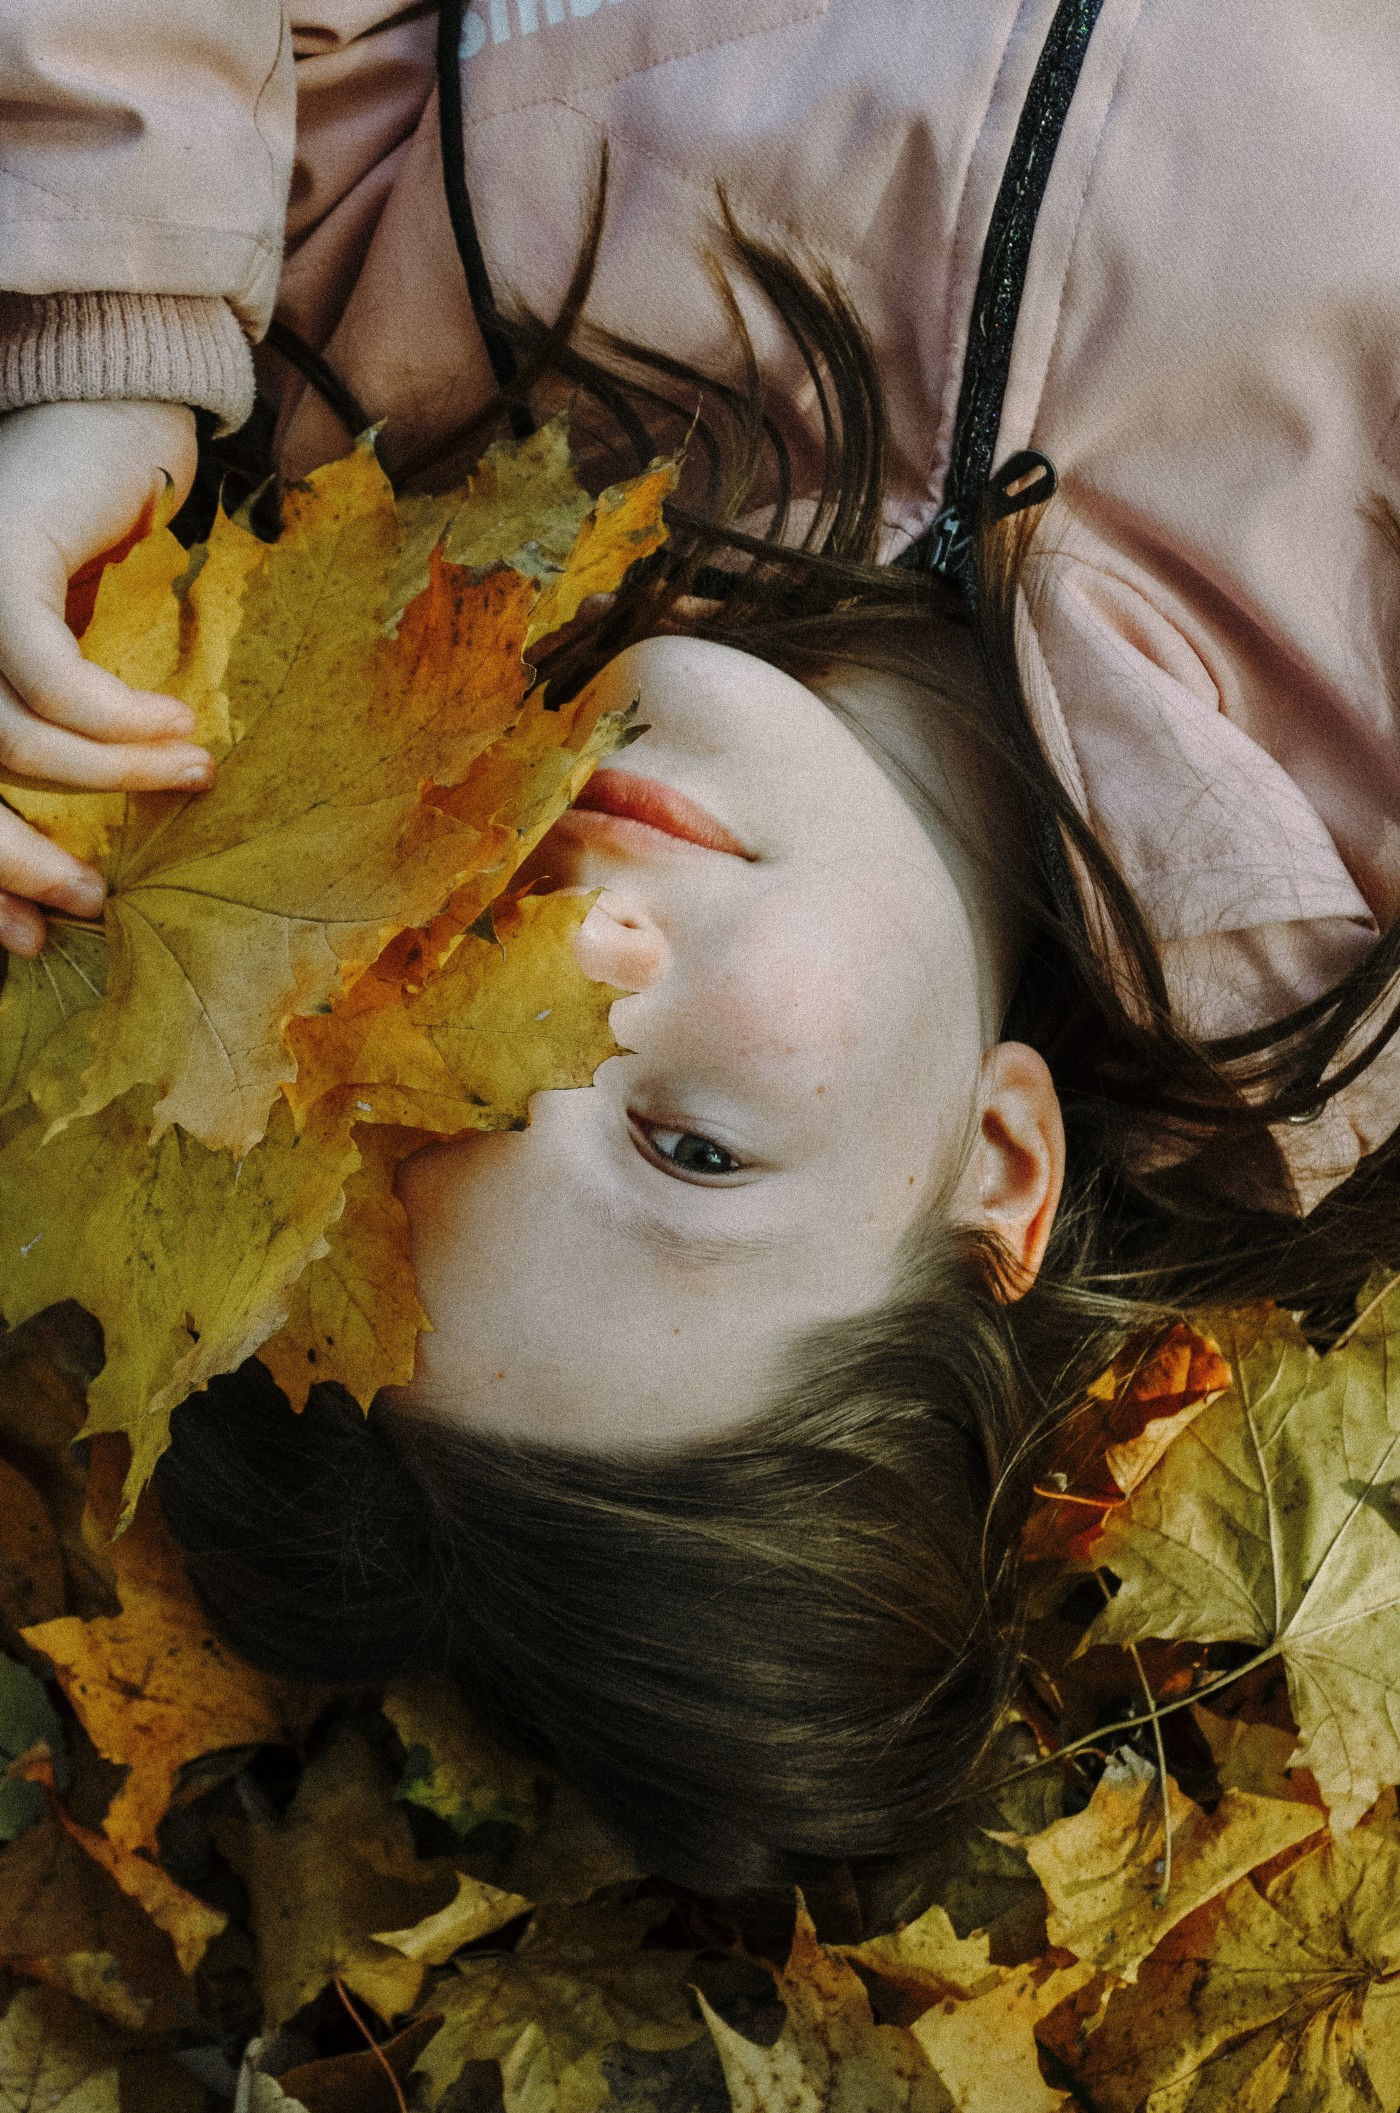 Woman laying on her back on the grass with a yellow and umber fall leaf covering half of her face. Calm and happy vibe.